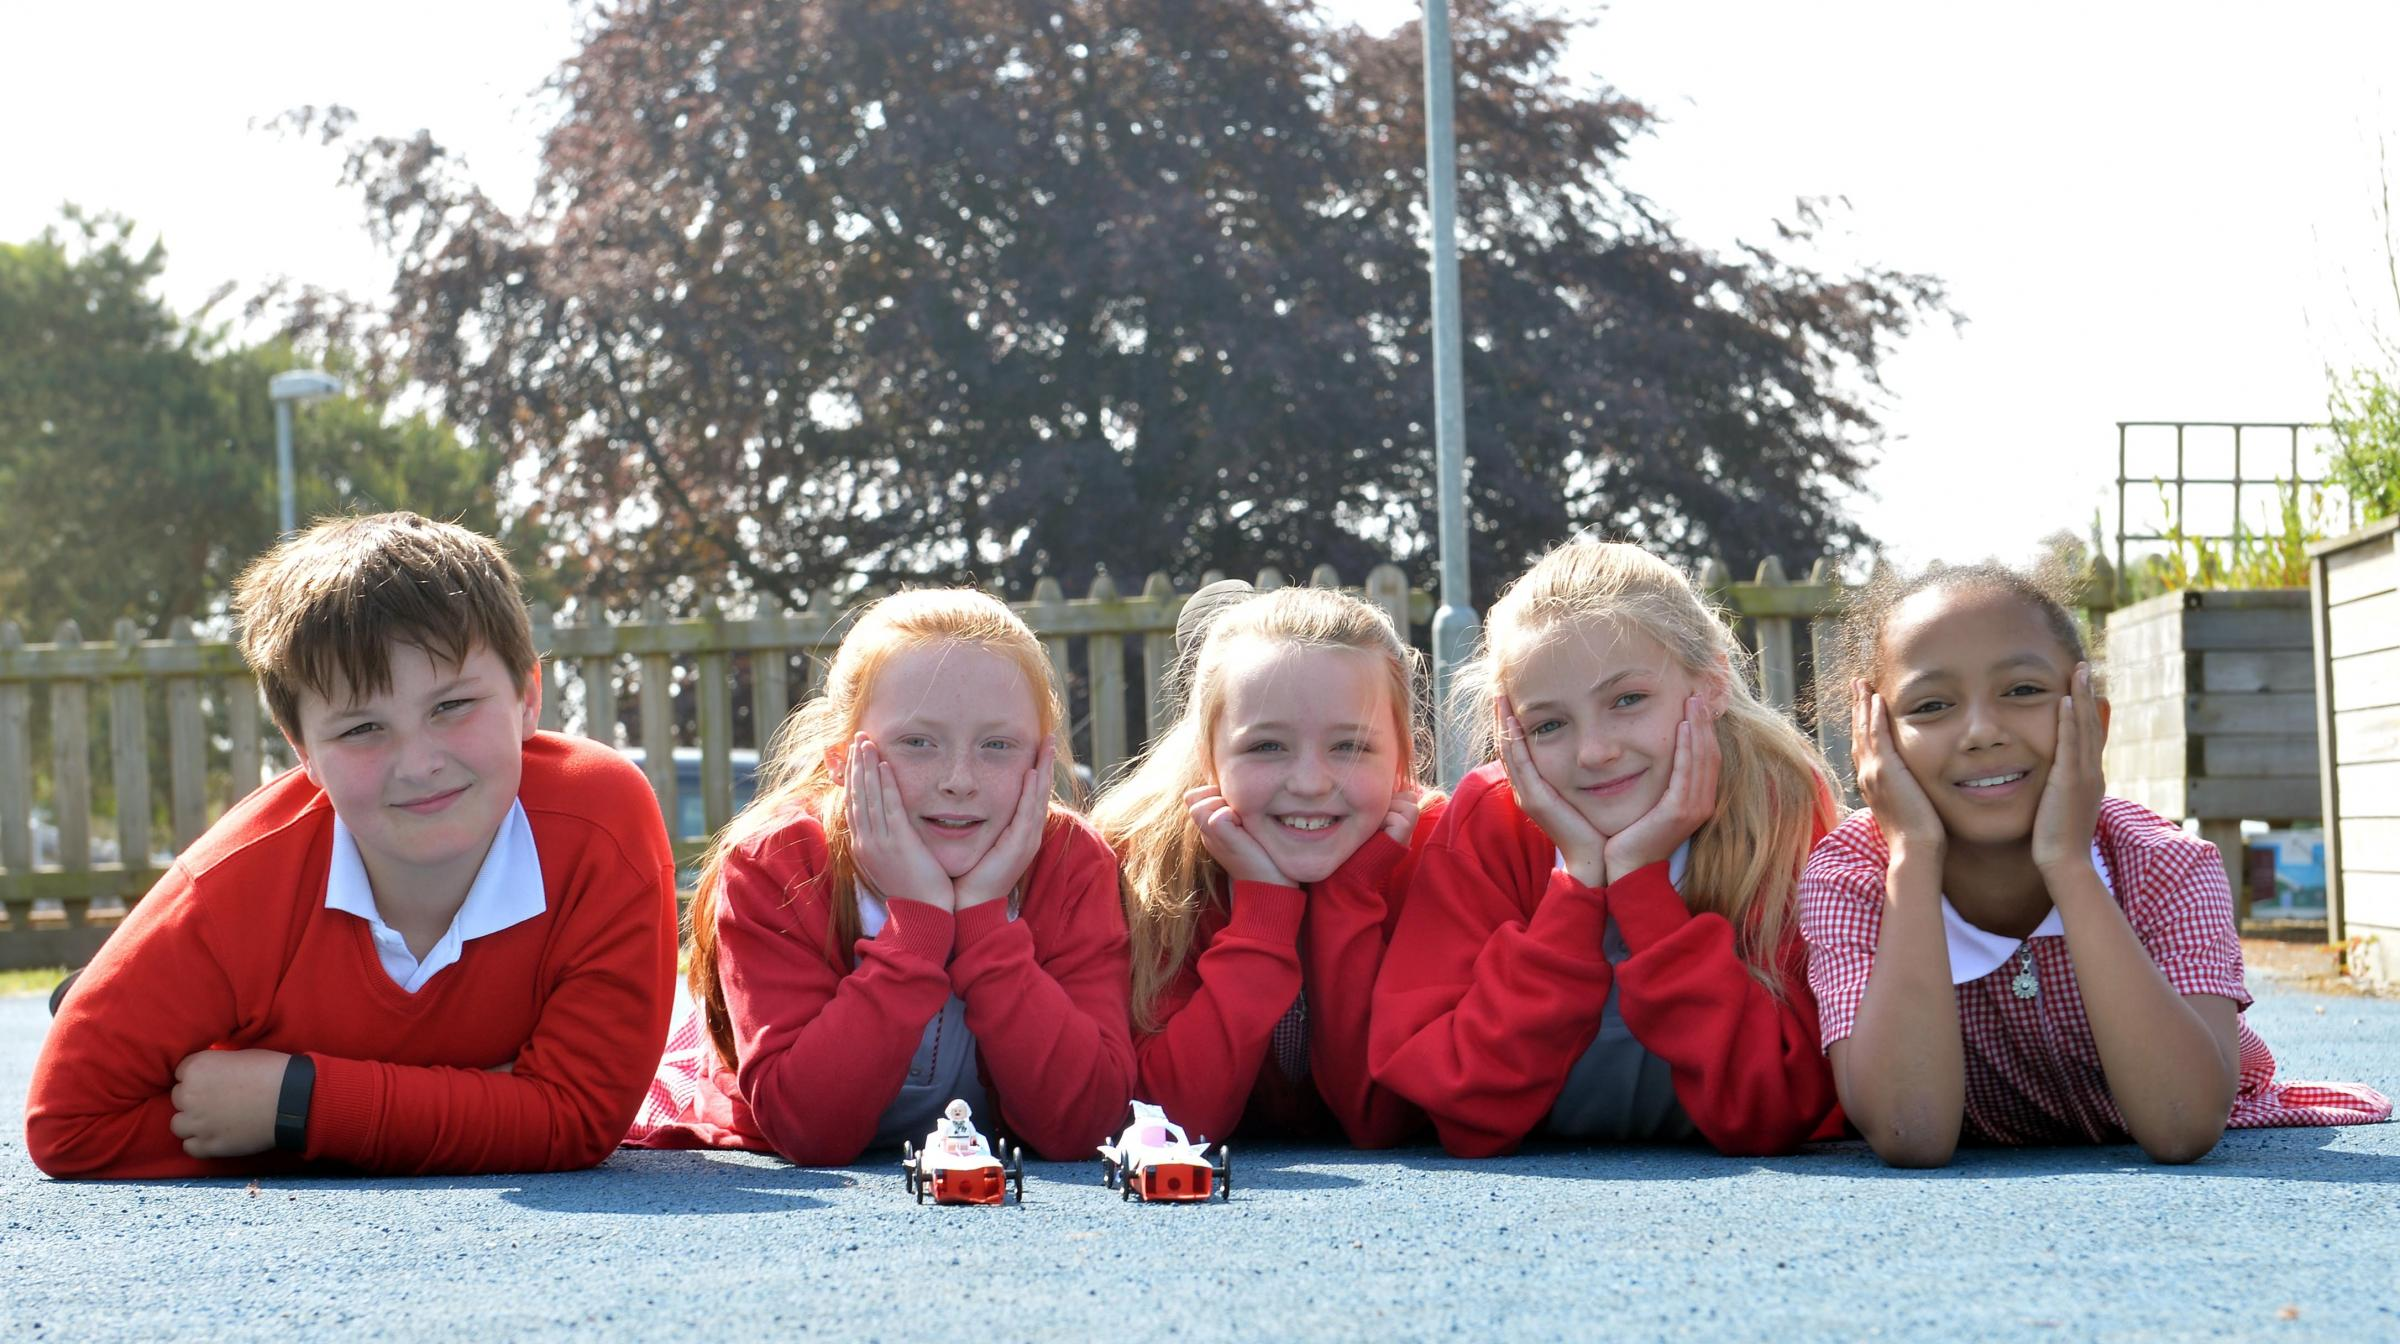 Castle Park Primary school of the week. Year 5 students who took on the F! challenge L-R Jack Hallett 9, Leah Arnold 9, Kacey Vincent 10, Meighan Moreton 10 and Flora L'Image 10 .   www.christinsleyphotography.co.uk